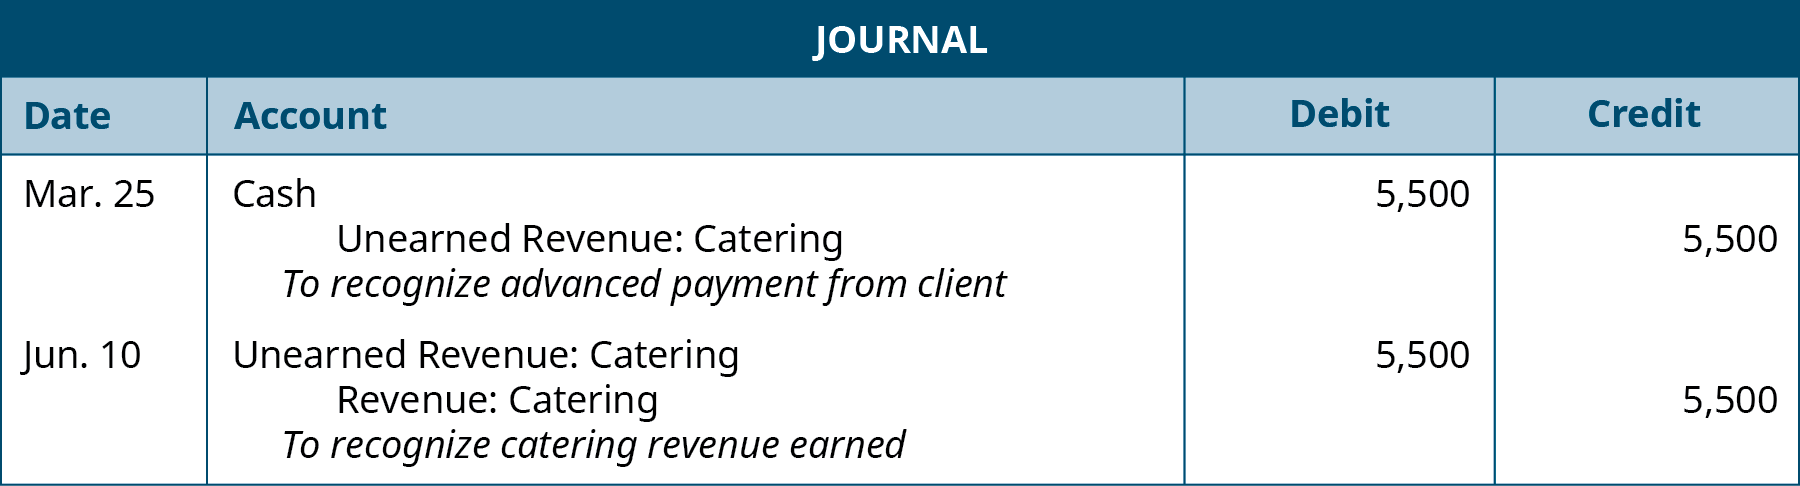 """The first journal entry is made on March 25 and shows a Debit to Cash for $5,500, a credit to Unearned catering revenue for $5,500 with the note """"To recognize advanced payment from client."""" The second journal entry is made on June 10, and shows a Debit to Unearned Catering revenue for $5,500 and a credit to Catering revenue for $5,500 with the note """"To recognize catering revenue earned."""""""